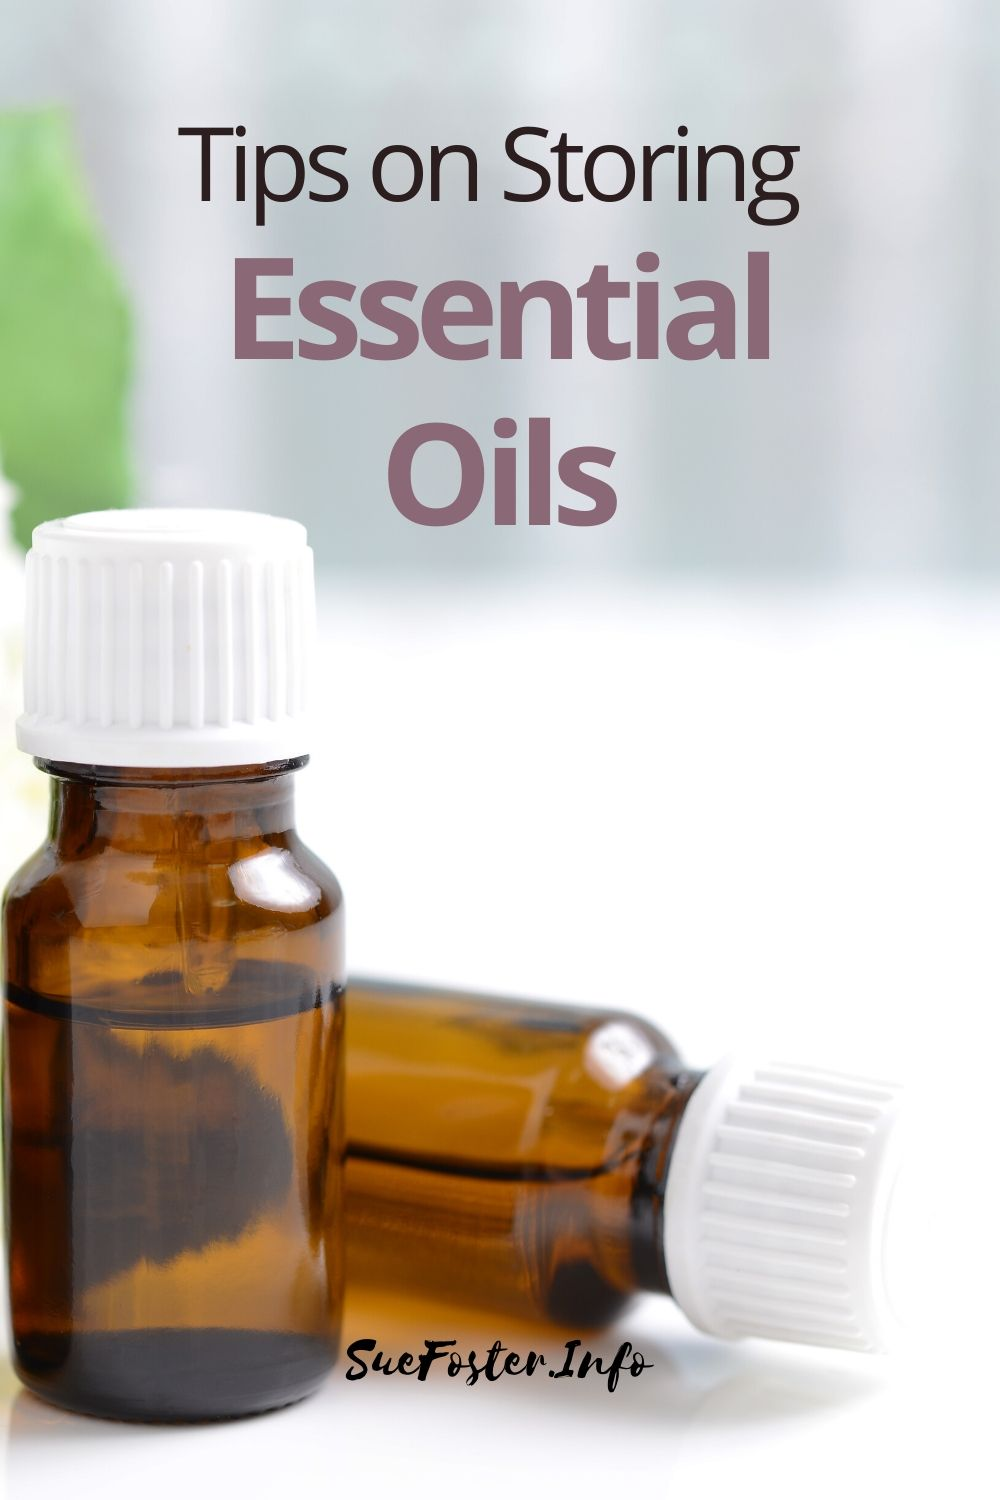 Properly storing essential oils will prolong their shelf life. The conditions that your essential oils are stored in can have an impact on their quality.